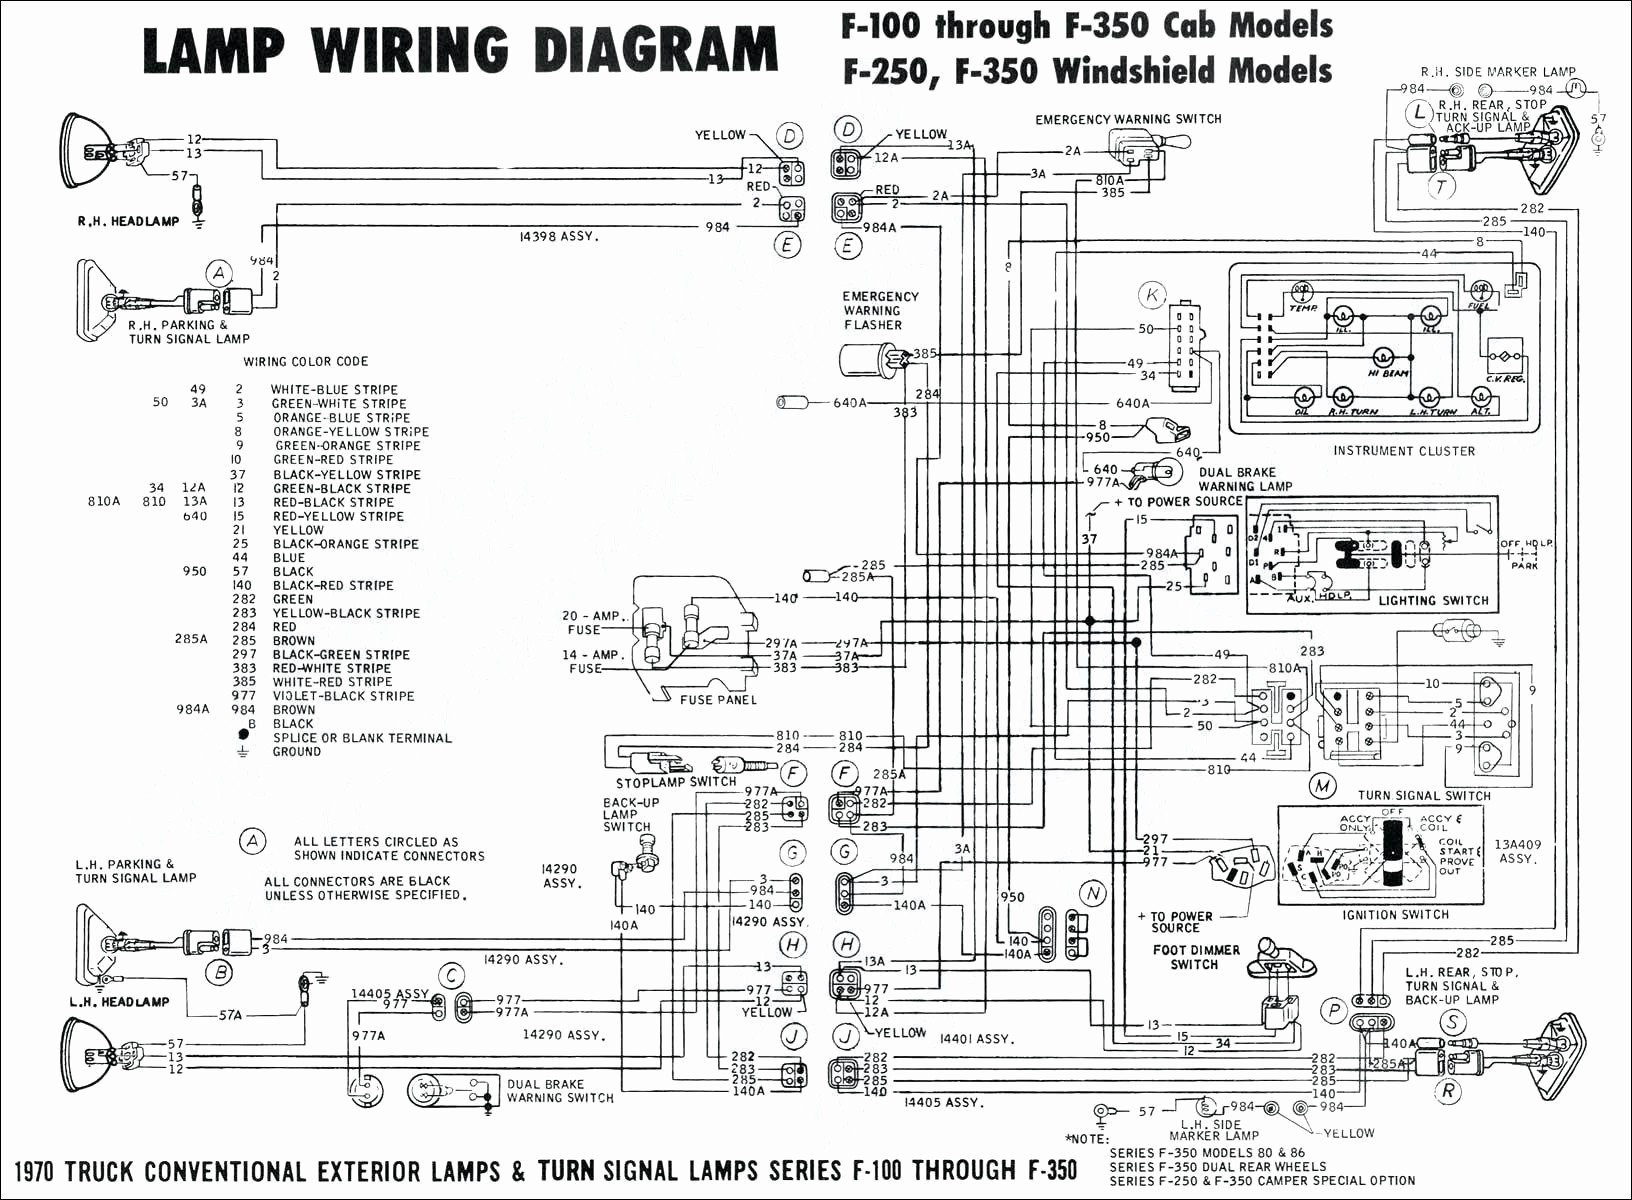 kib m21vw wiring diagram kib micro monitor wiring diagram 45 123 101 4 98 194an of kib m21vw wiring diagram